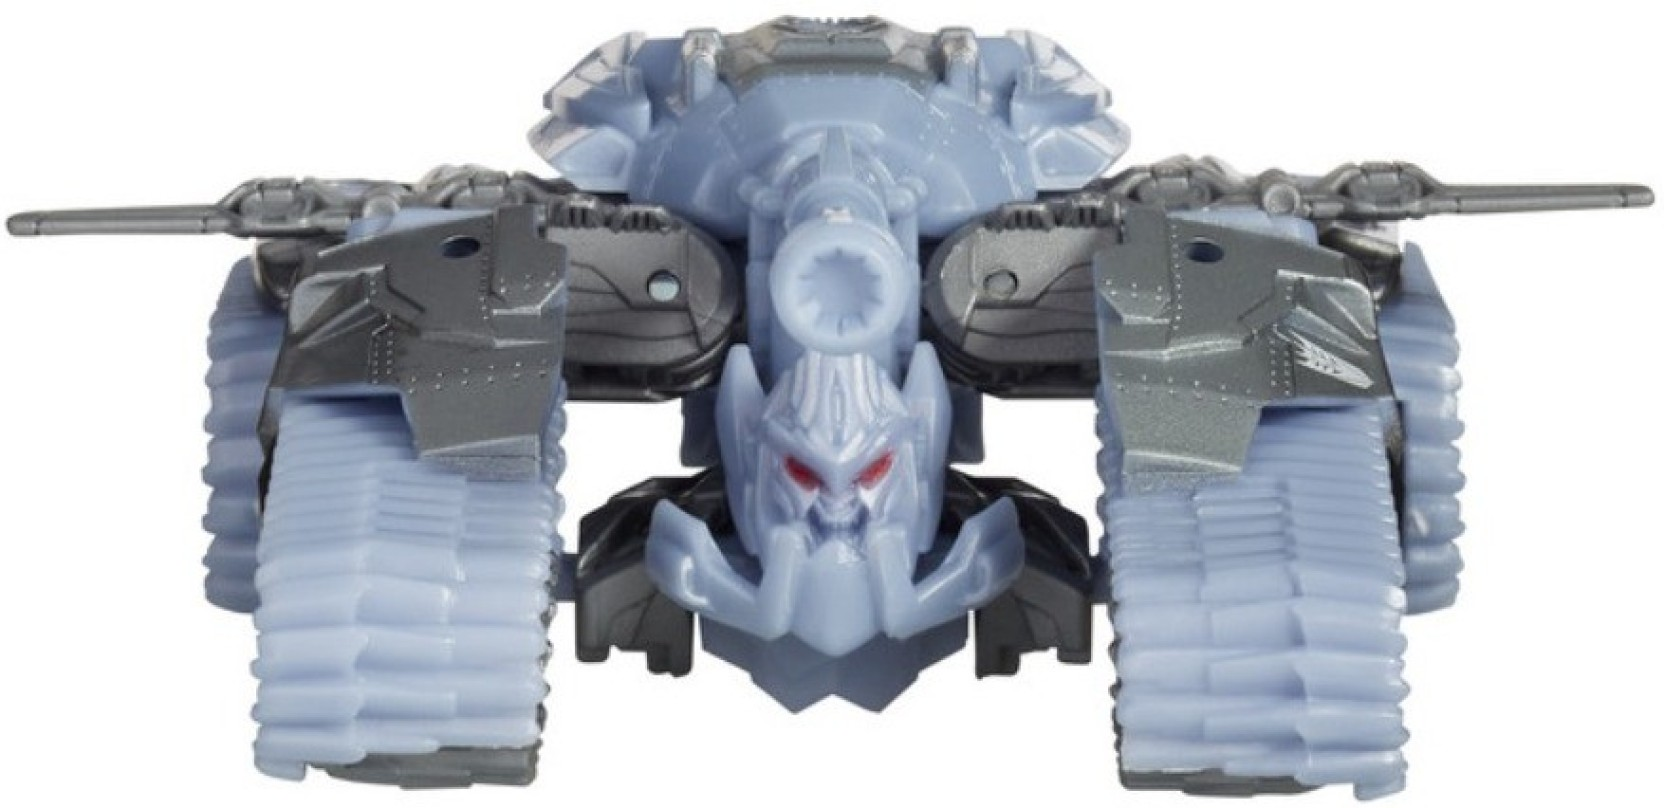 18bccf55d9e726 Hasbro Transformers  Bumblebee -- Energon Igniters Power Series Megatron  (Multicolor)